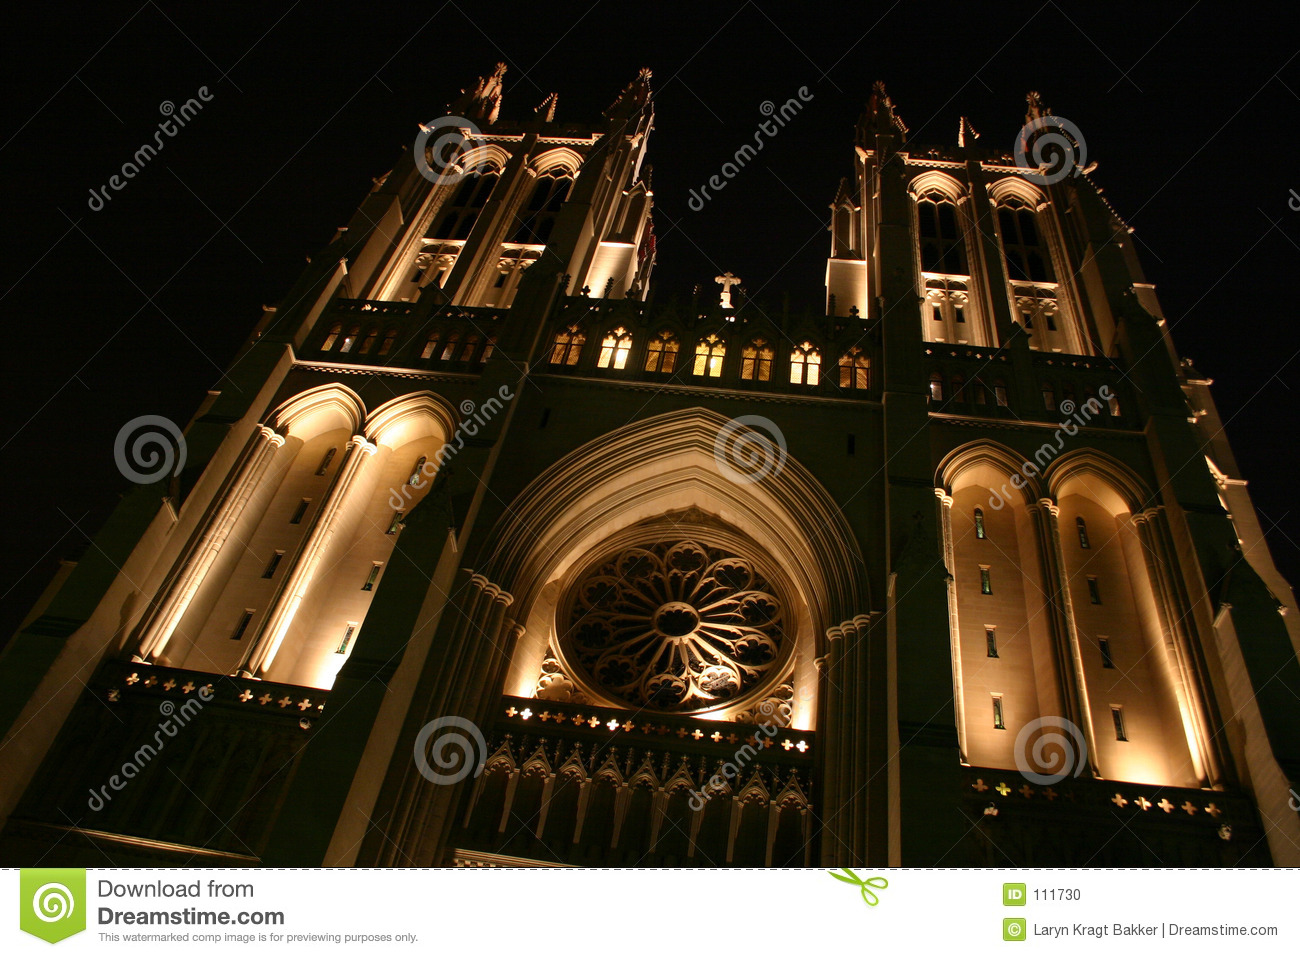 national cathedral angled and lit for 39 looming 39 effect. Black Bedroom Furniture Sets. Home Design Ideas